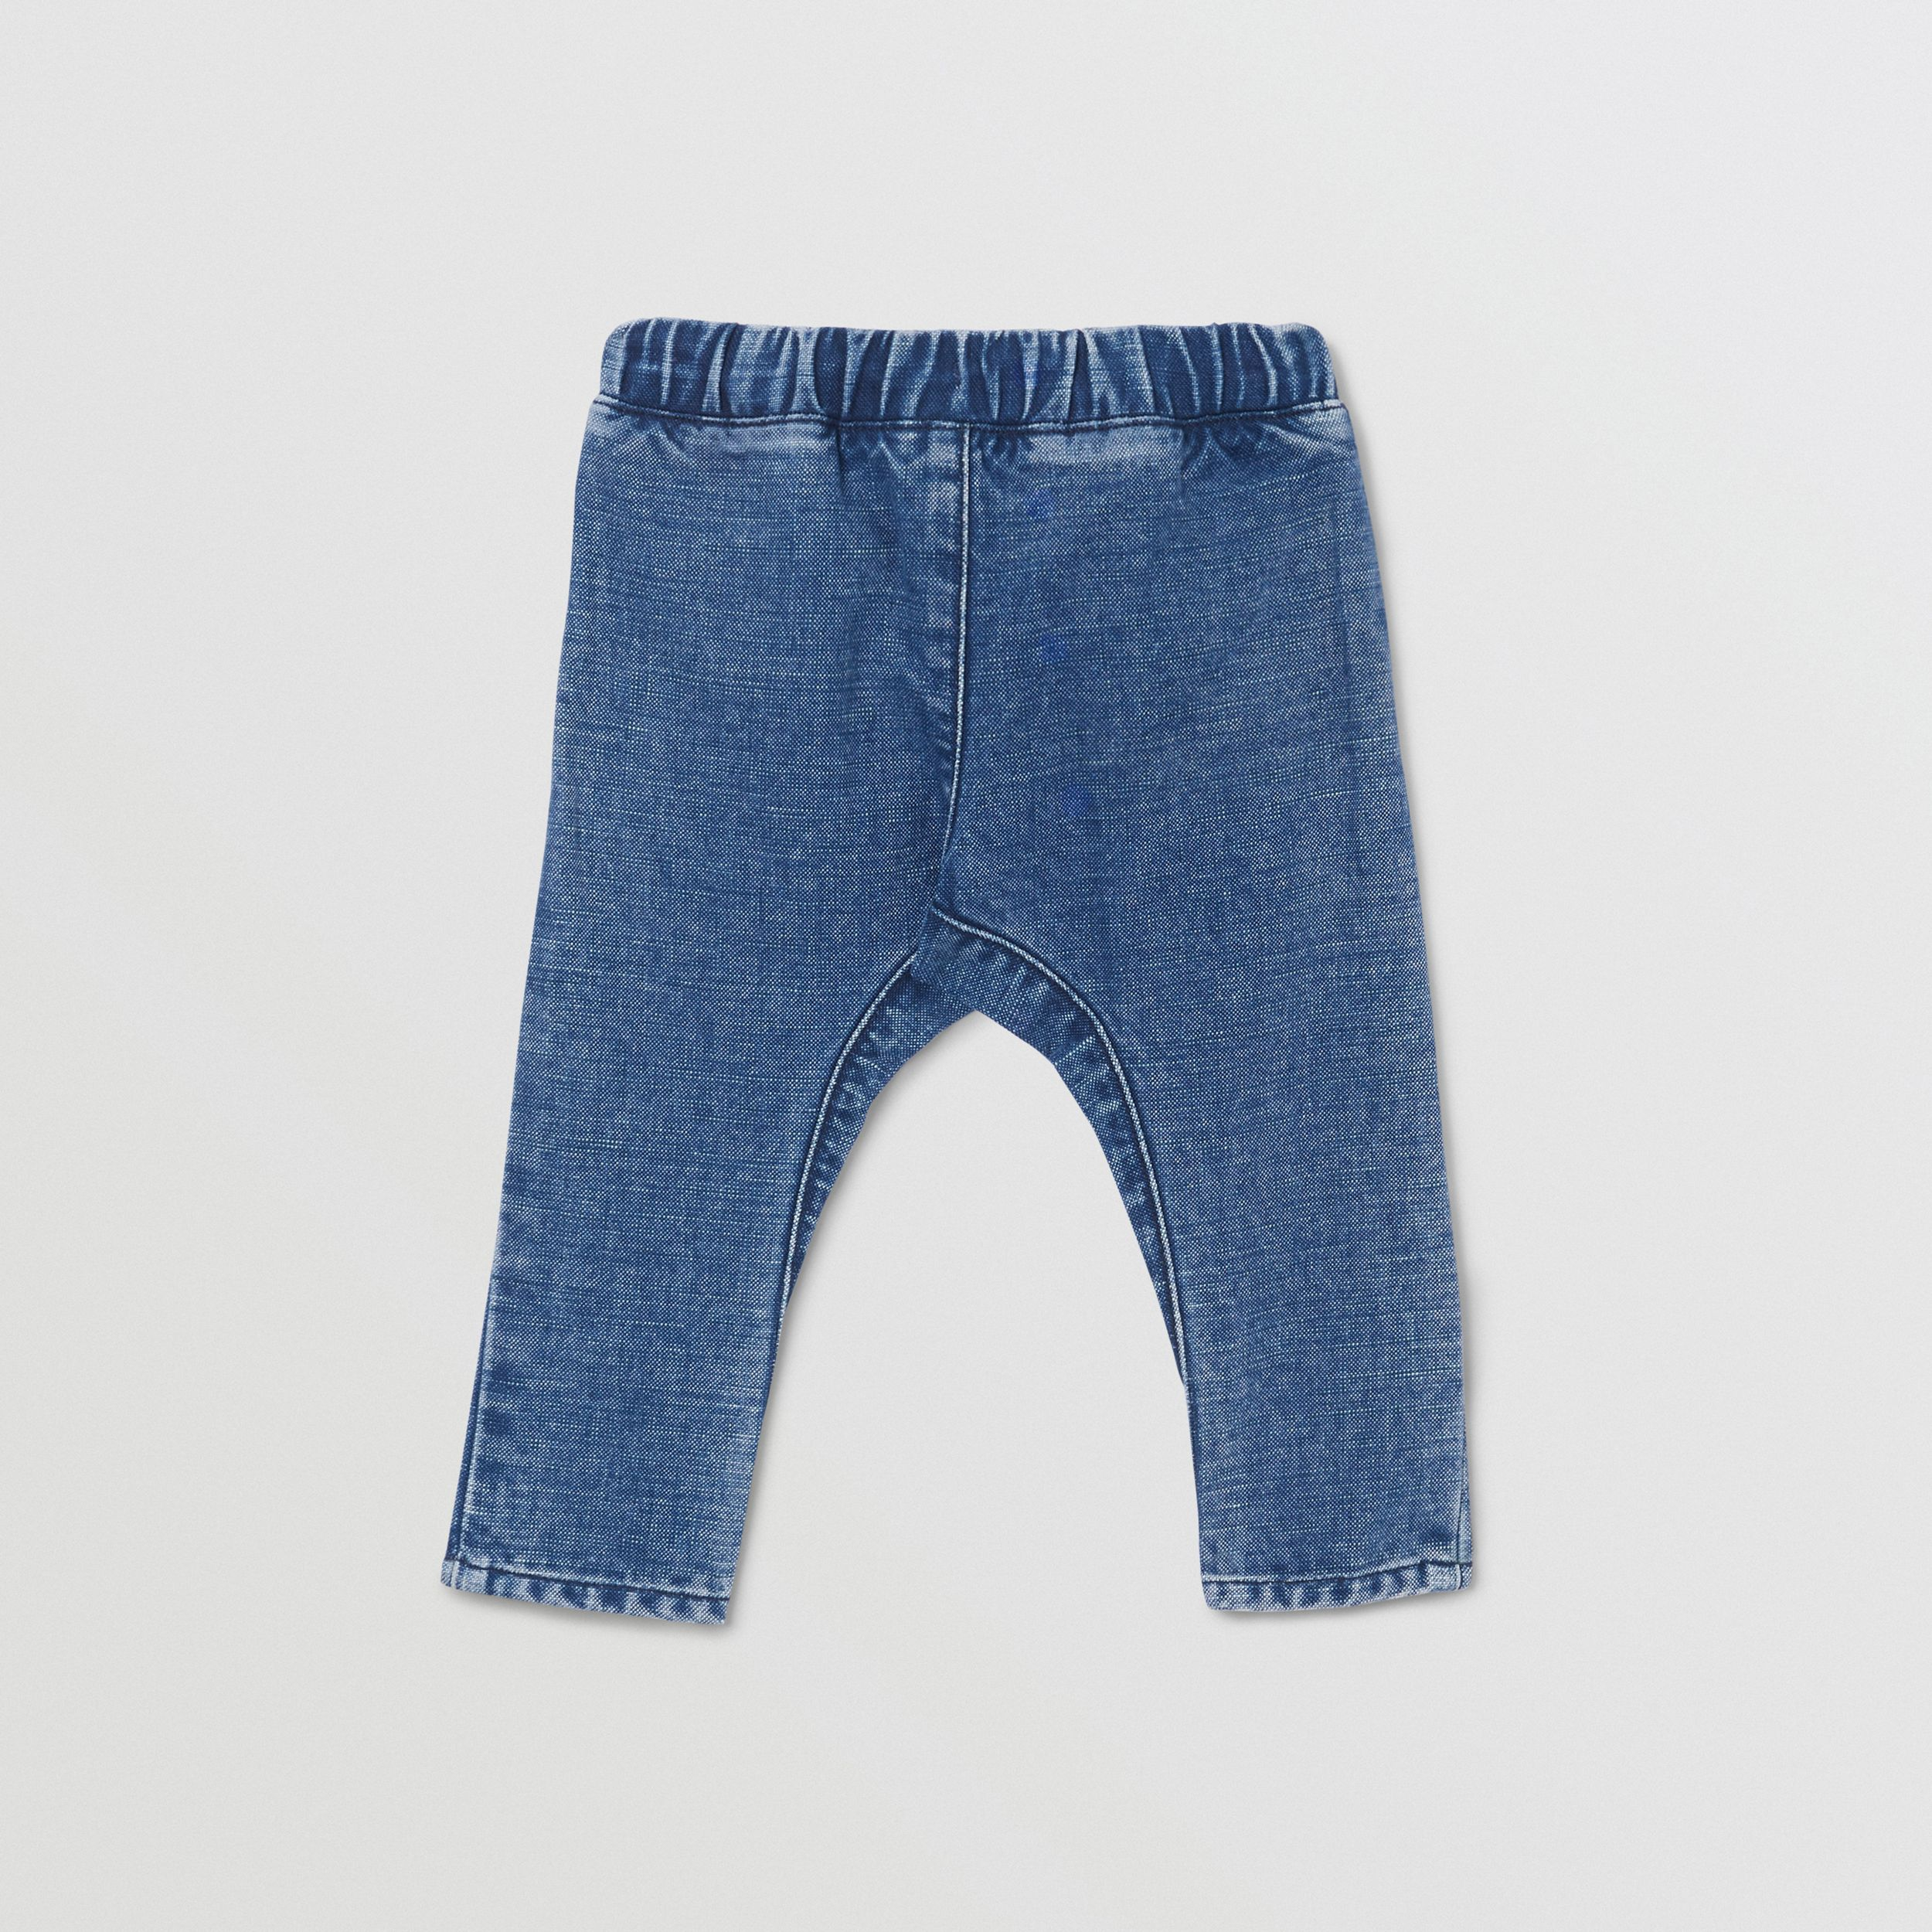 Logo Print Japanese Denim Jeans in Indigo - Children | Burberry - 4